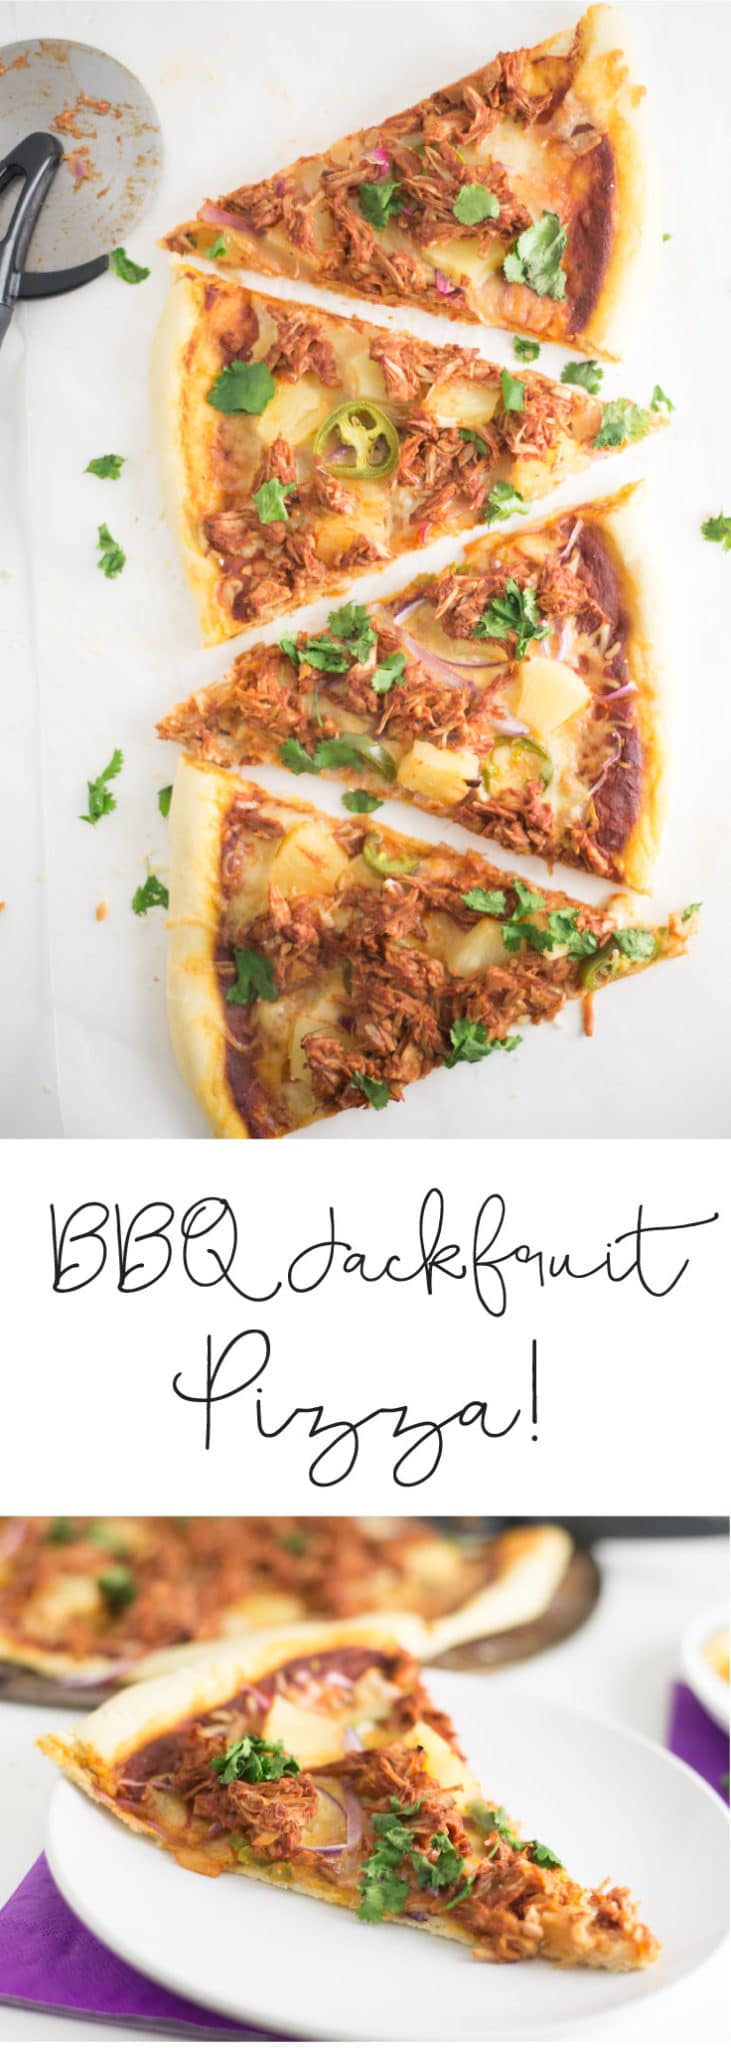 BBQ Jackfruit Pizza -- Try this vegetarian recipe for an easy weeknight meal! Gooey cheese, pineapple, jalapenos, and vegan BBQ